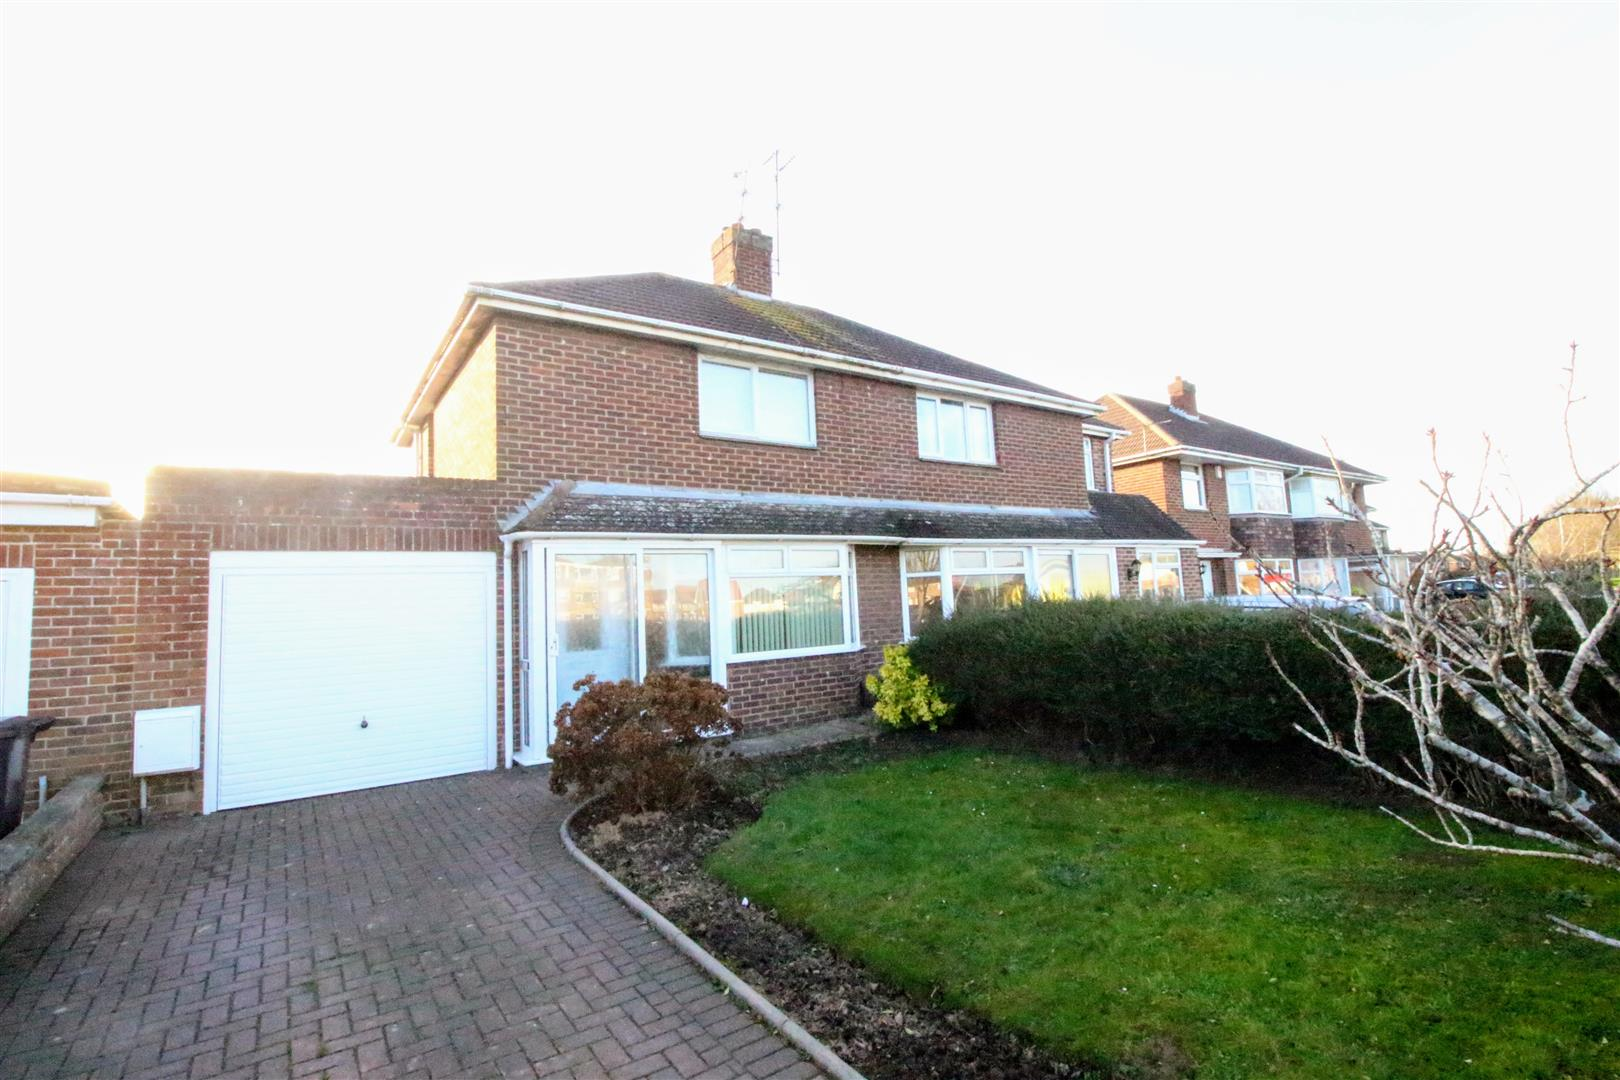 2 Bedrooms Semi Detached House for sale in Queens Drive, Old Walcot, Swindon